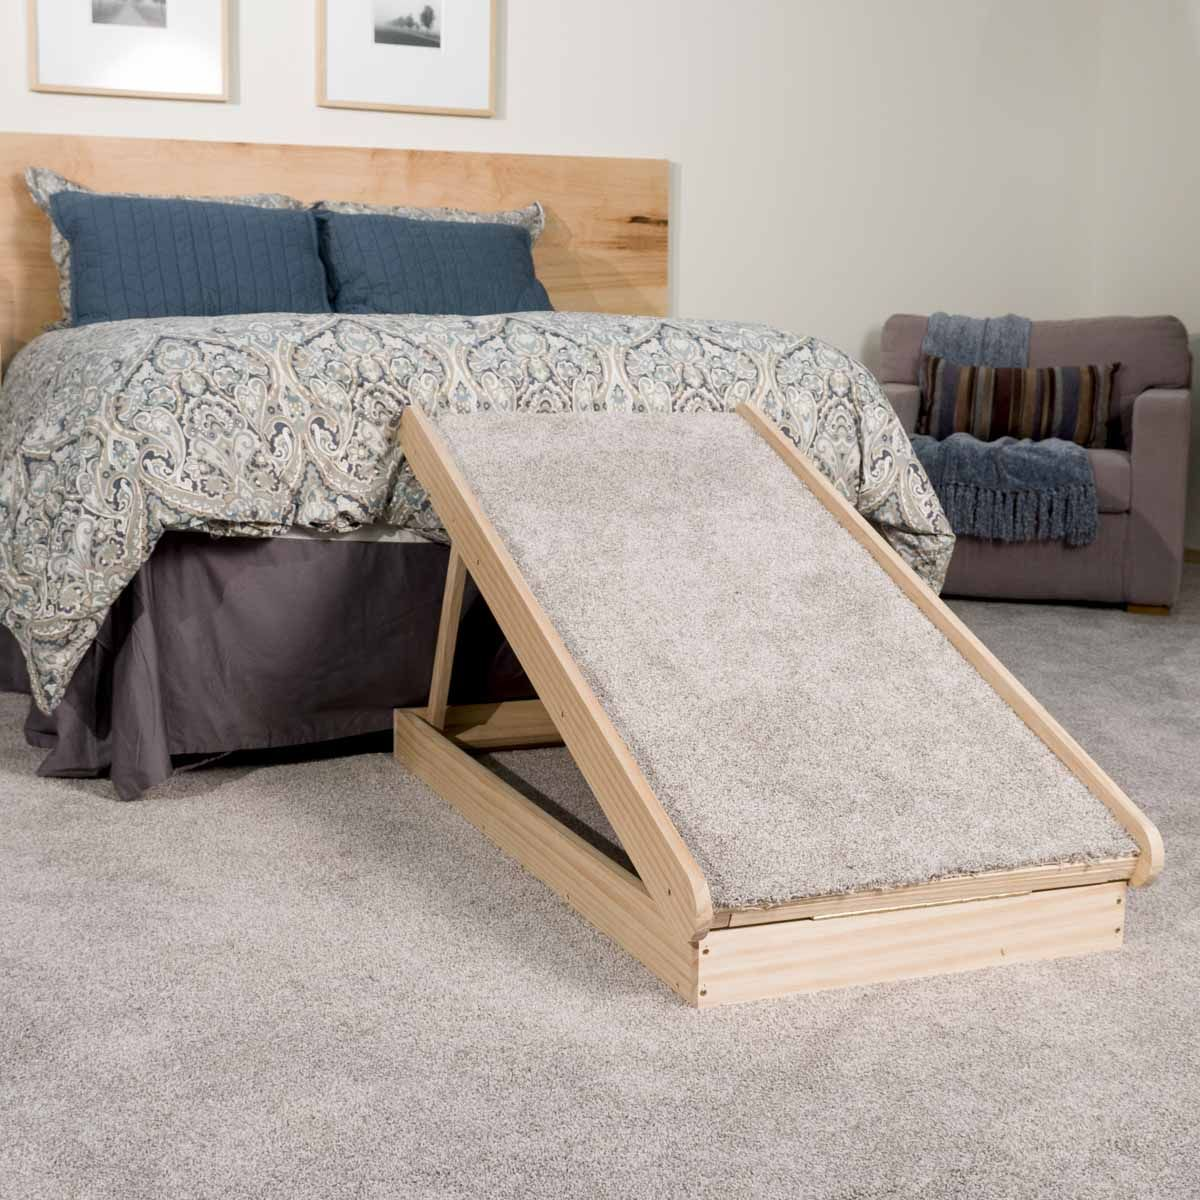 31 Indoor Woodworking Projects To Do This Winter Dog Ramp For